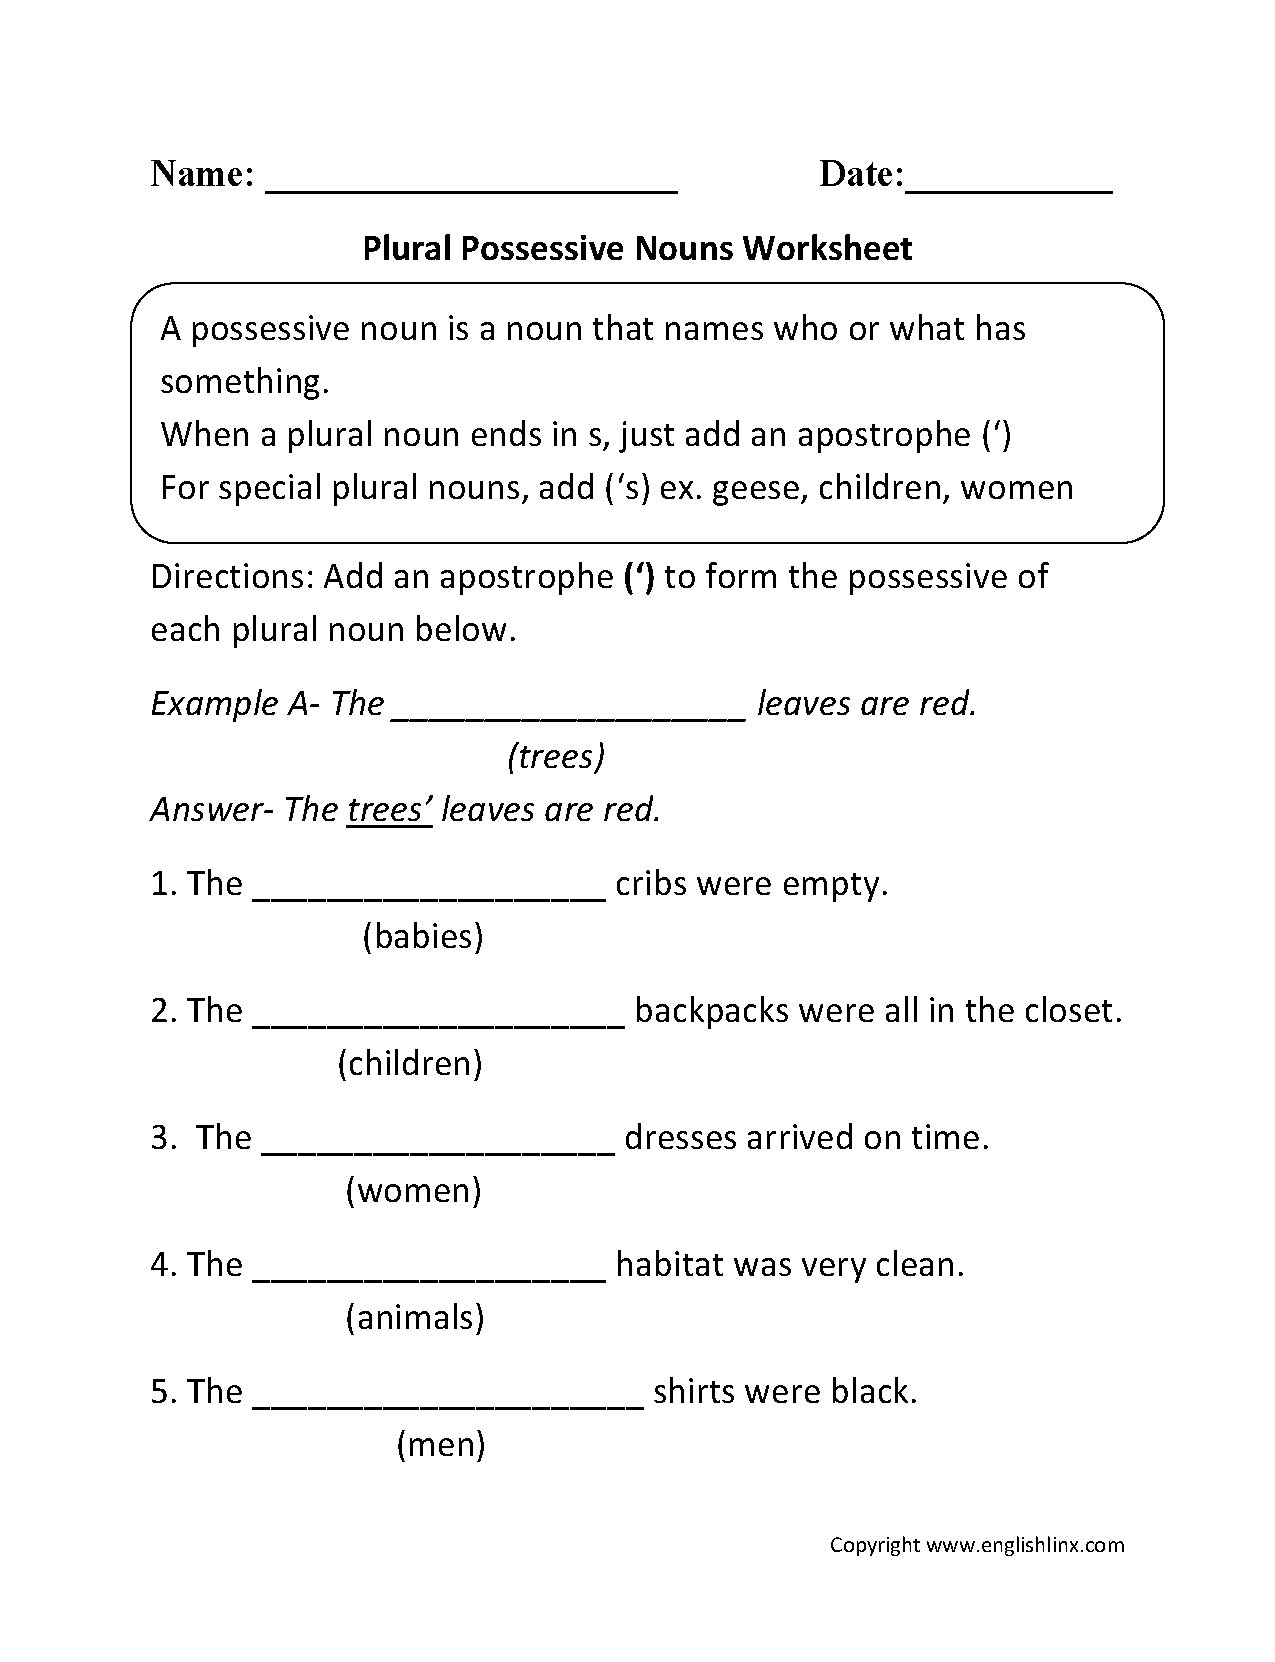 Aldiablosus  Picturesque Nouns Worksheets  Possessive Nouns Worksheets With Fascinating Possessive Nouns Worksheets With Adorable Multiplication Worksheets Tes Also Speech Homework Worksheets In Addition Worksheet Numbers   And Kindergarten Worksheets Writing As Well As Percent Yield Practice Worksheet Additionally Farm Worksheets Preschool From Englishlinxcom With Aldiablosus  Fascinating Nouns Worksheets  Possessive Nouns Worksheets With Adorable Possessive Nouns Worksheets And Picturesque Multiplication Worksheets Tes Also Speech Homework Worksheets In Addition Worksheet Numbers   From Englishlinxcom